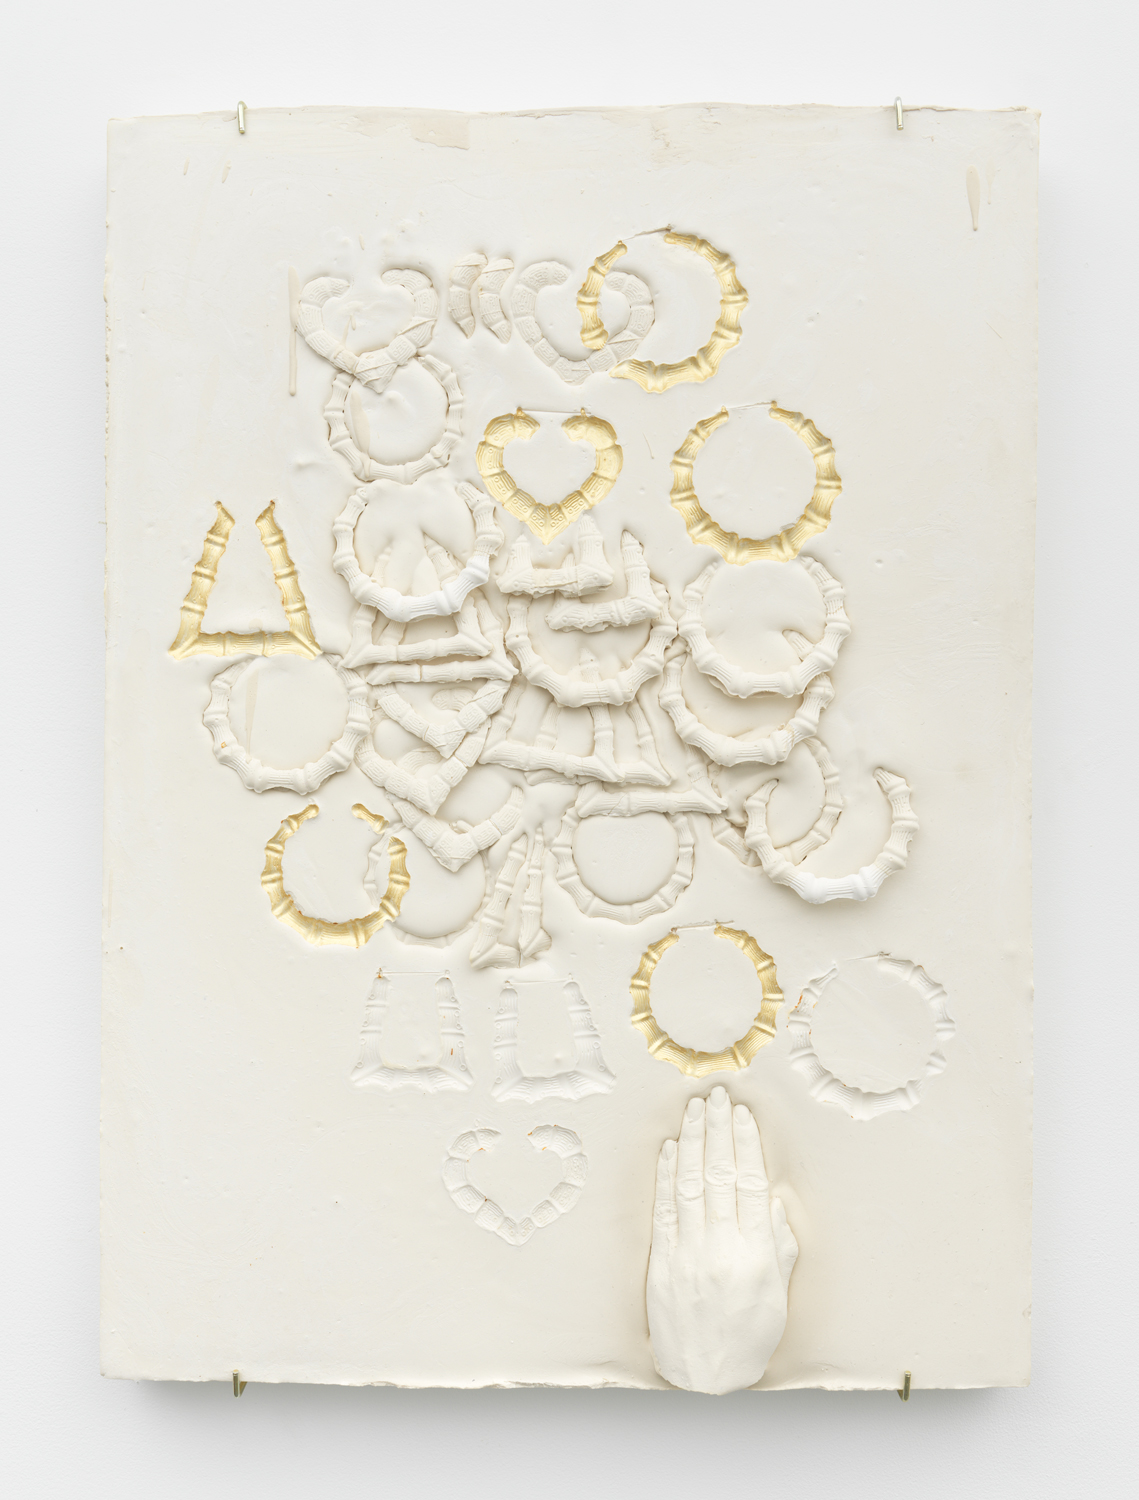 Composition with Bamboo Earrings, Impressed with Gold, Overlapping with Hand  Plaster and acrylic 29 x 21.5 x 3 inches, 73.66 x 54.61 x 7.62 cm 2019